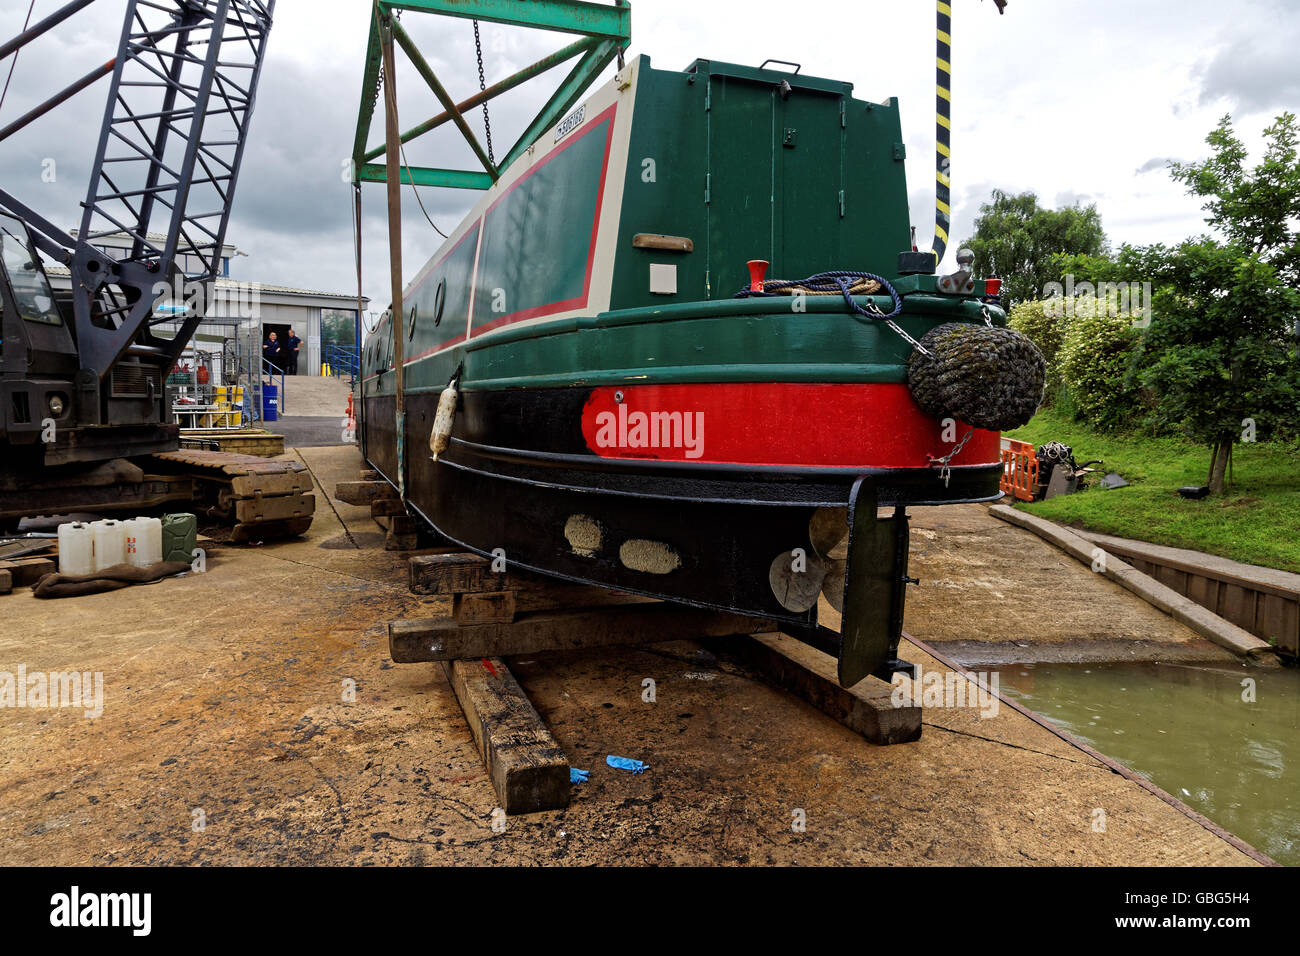 narrowboat out of the water  on slipway for blackening - Stock Image